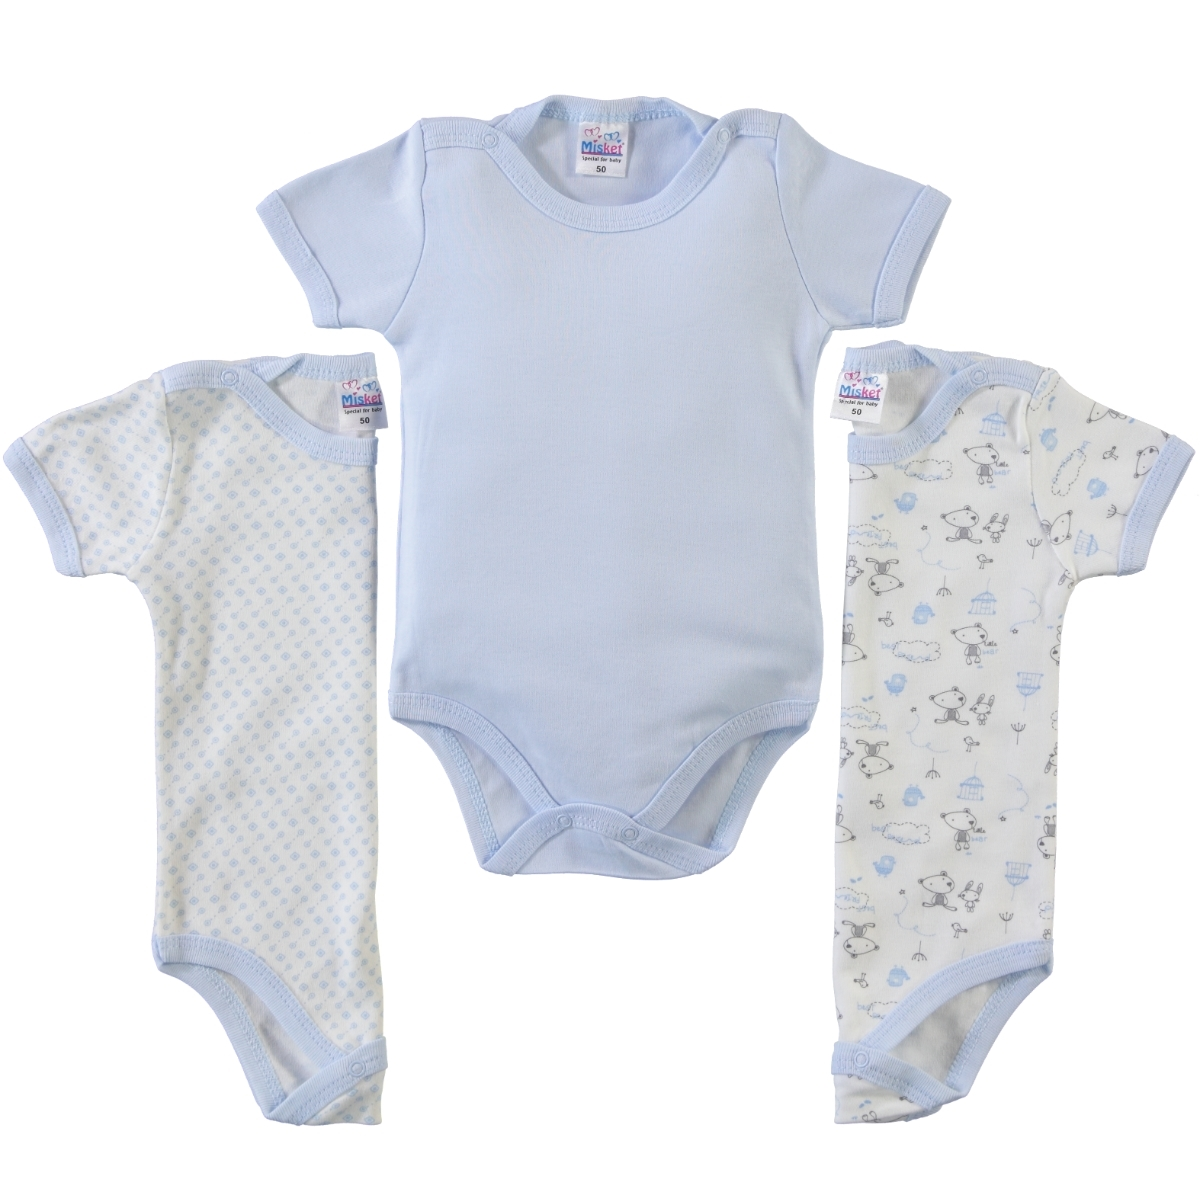 Misket Baby 3-0-12 months bodysuit with snaps, blue